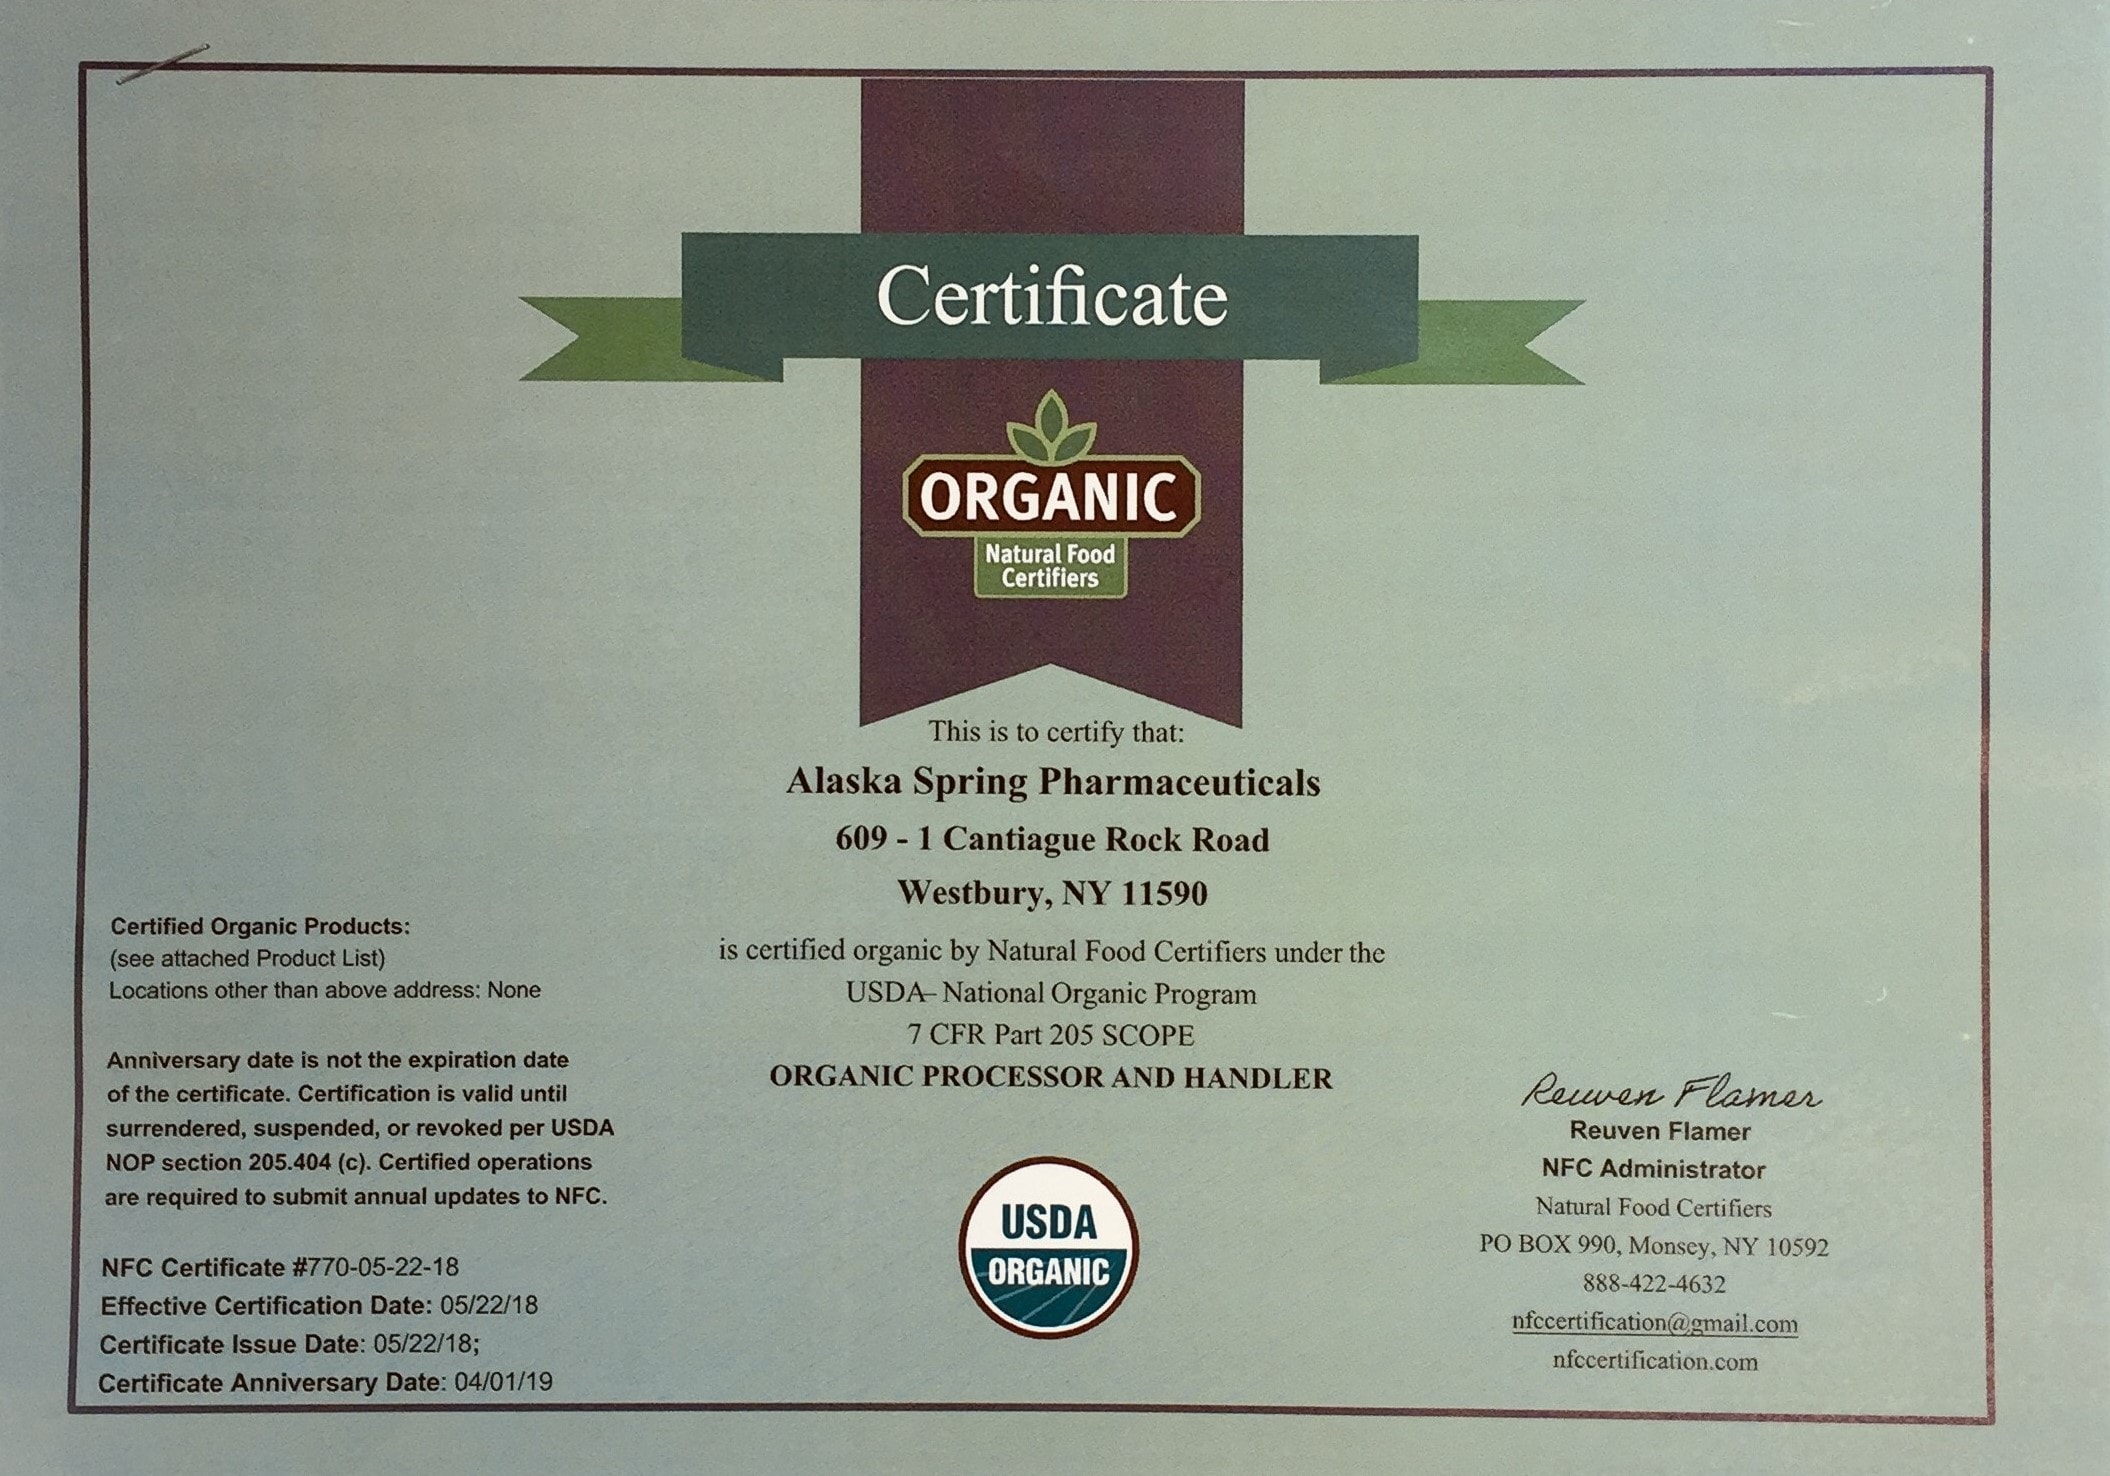 Certificate of Organic Natural Food